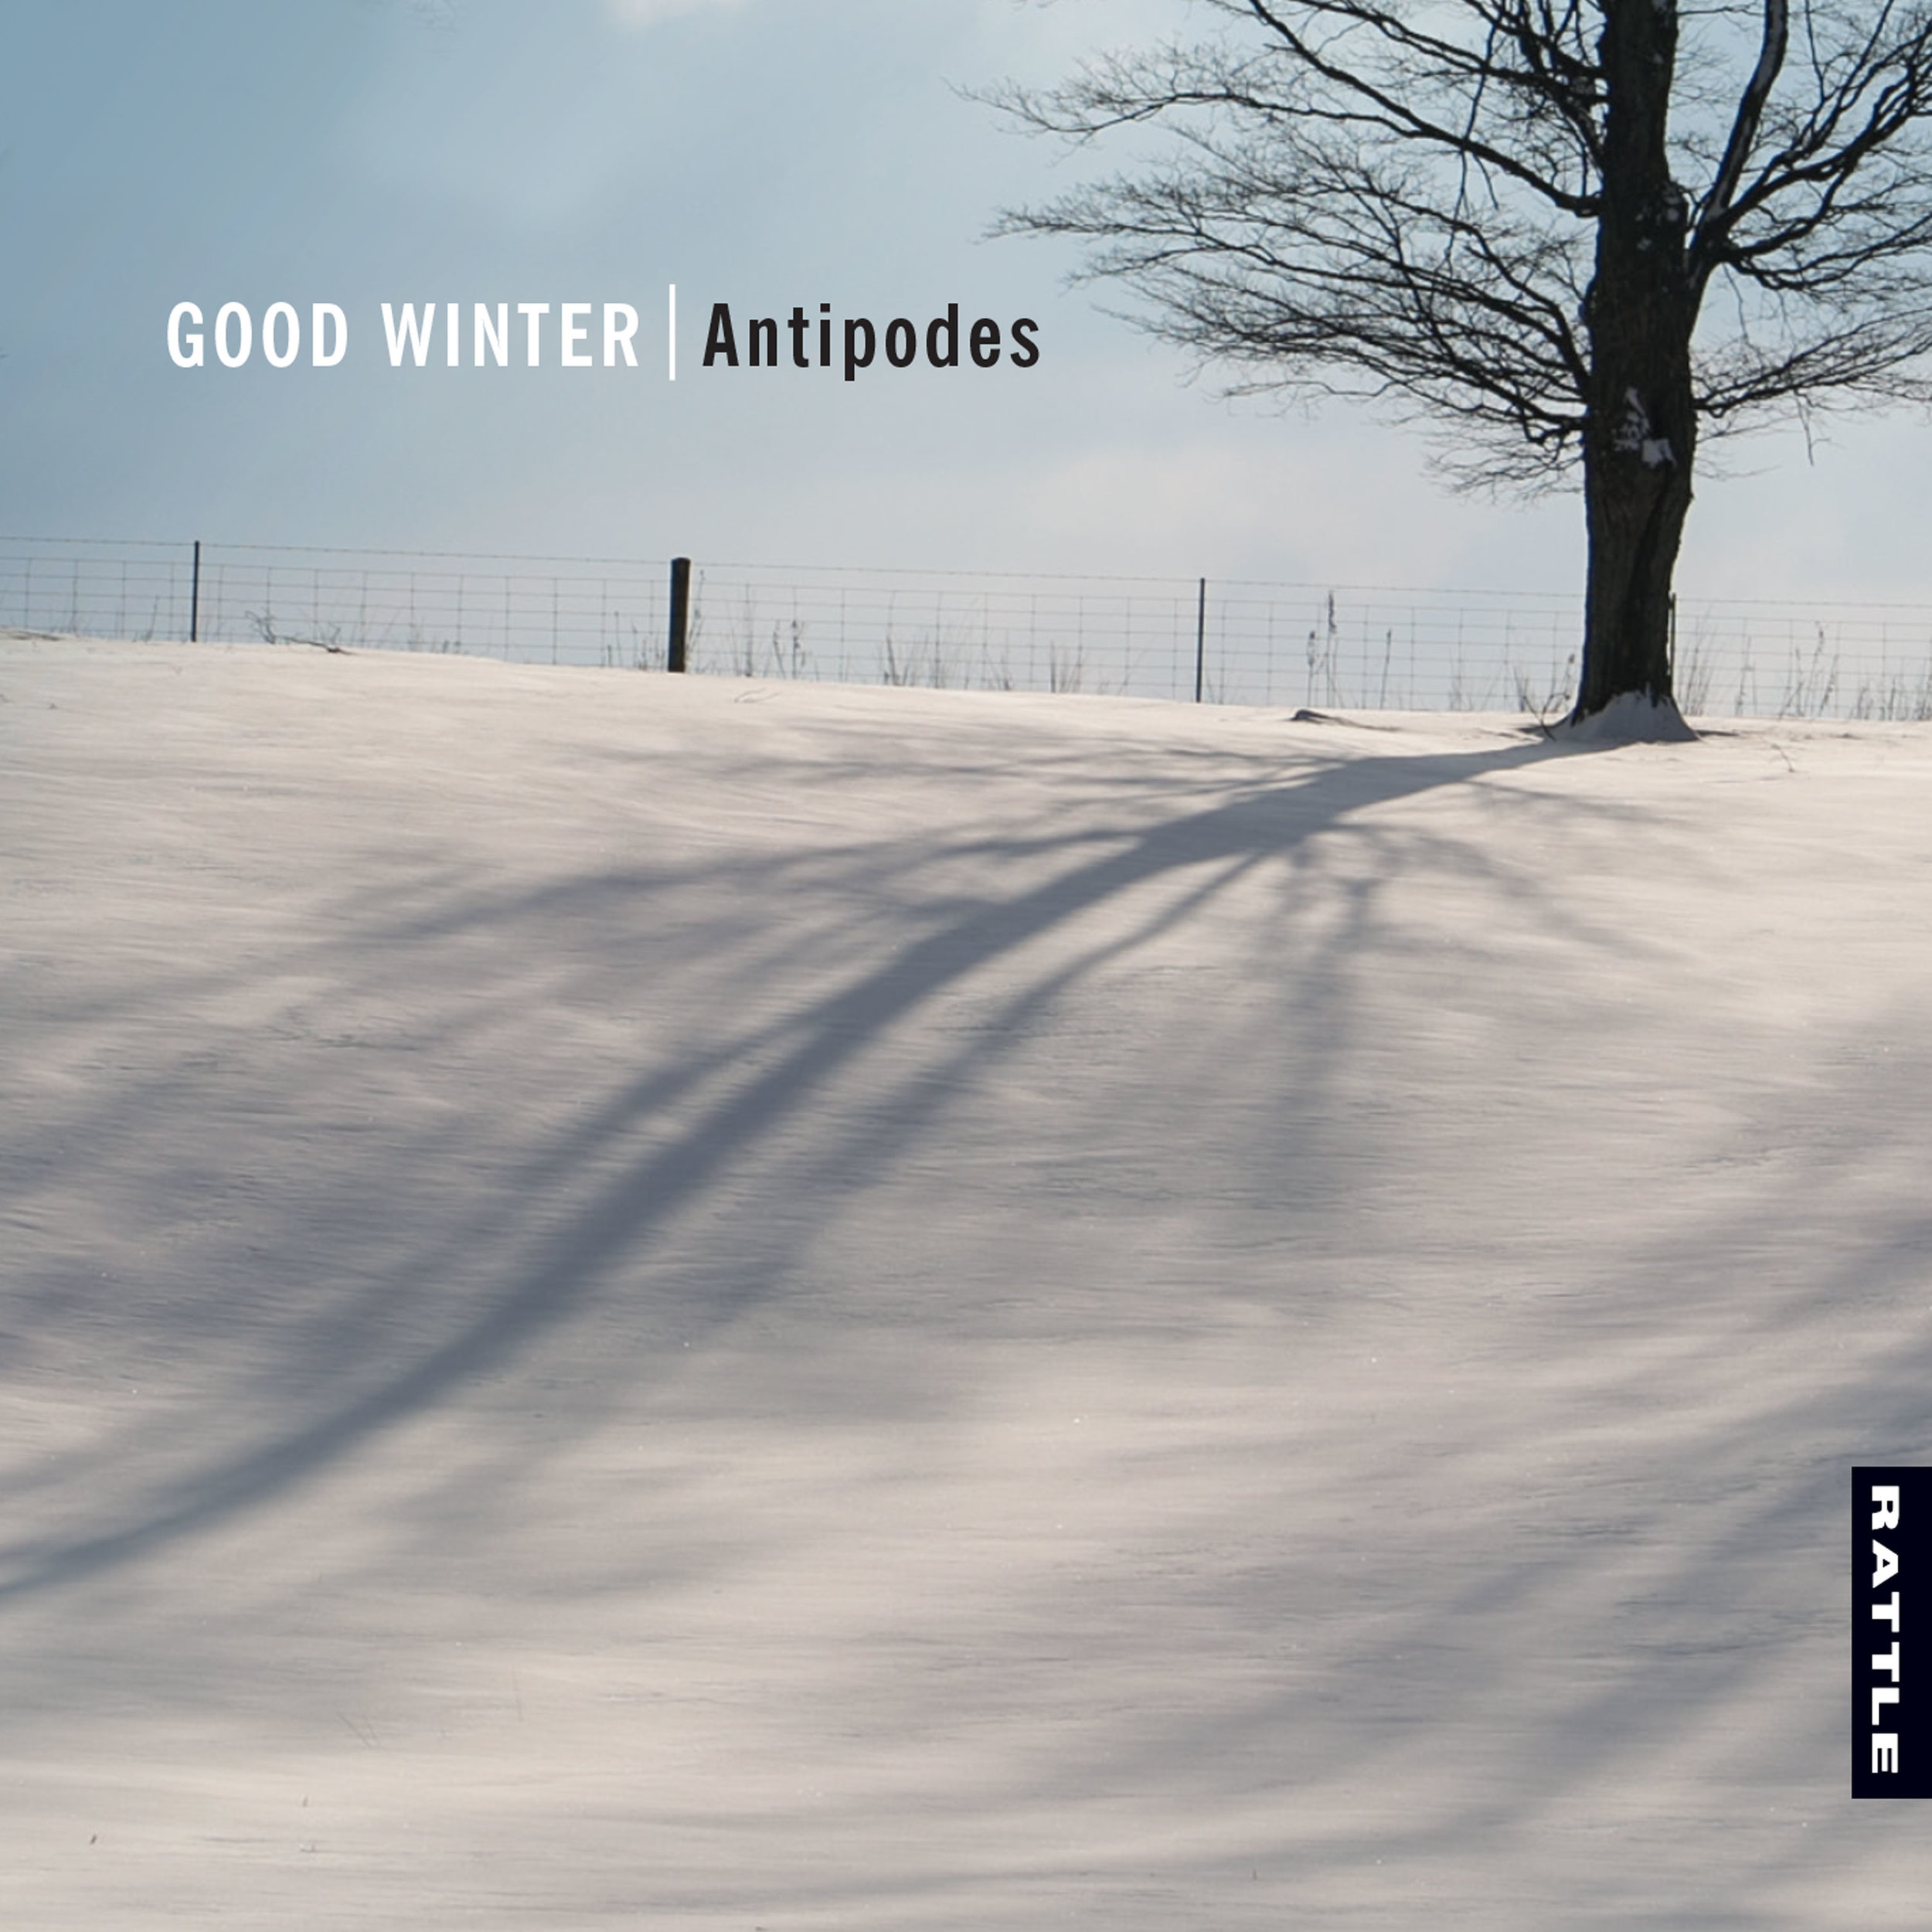 goodwinterantipodes